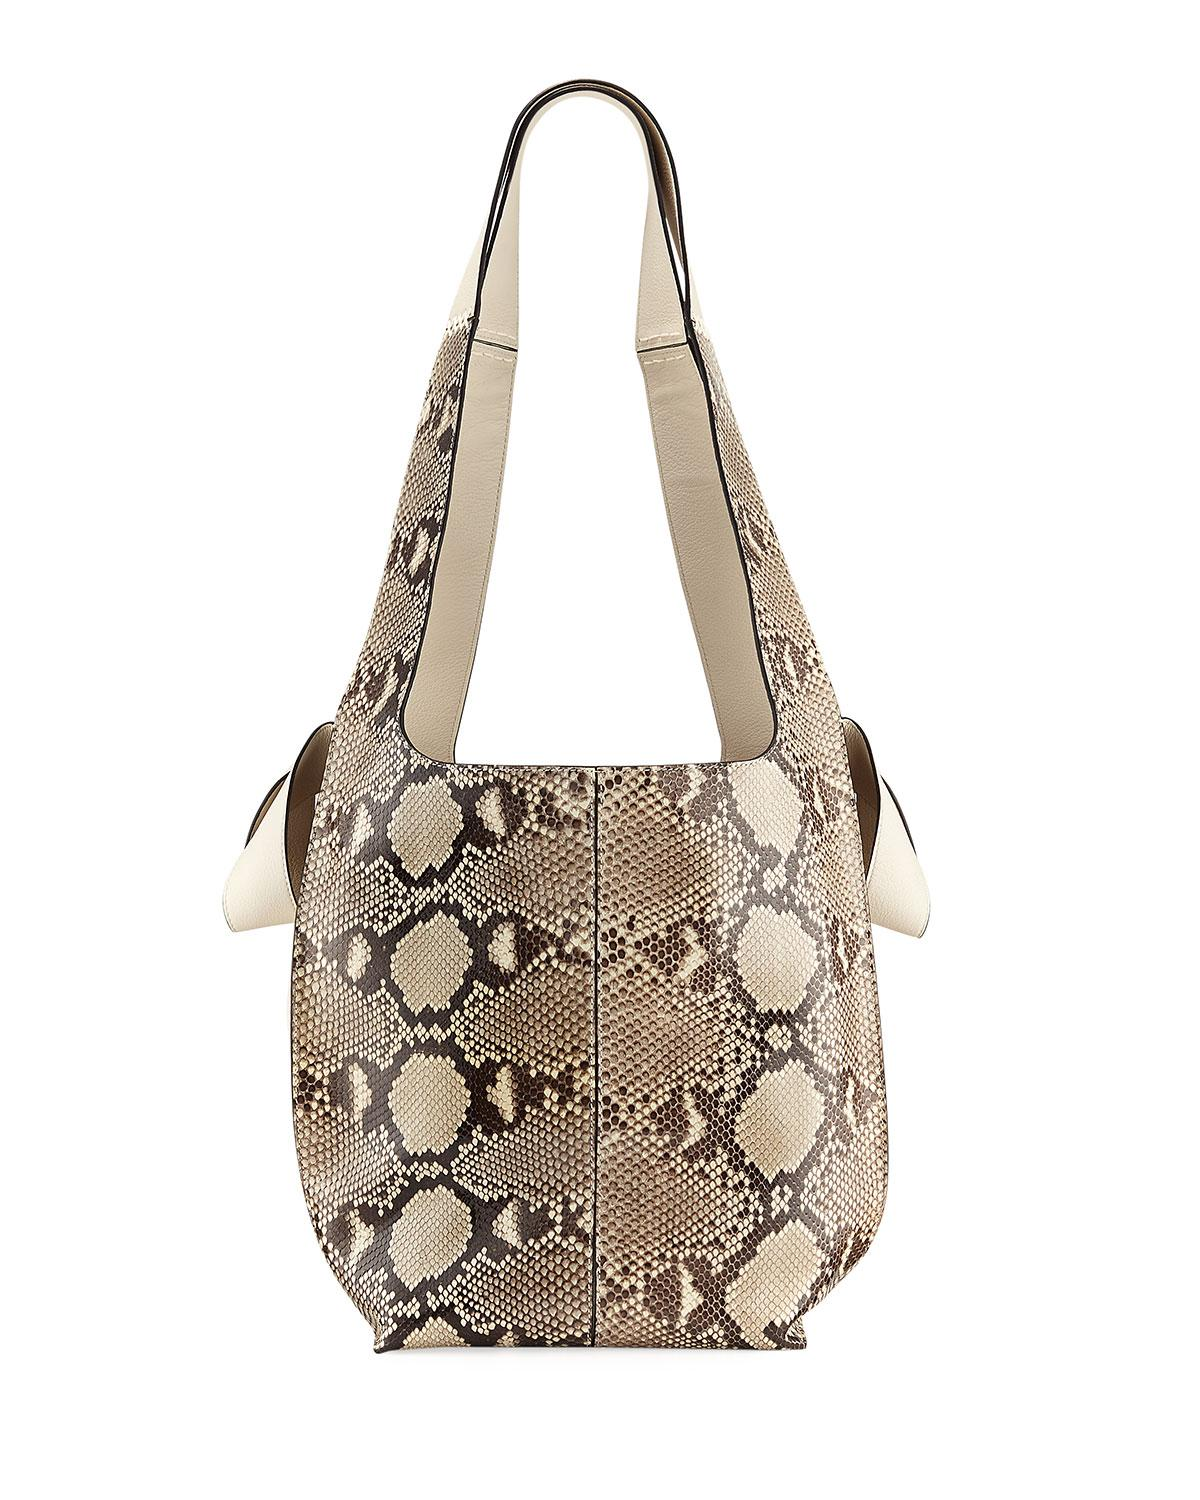 Loewe Python Two-tone Hobo Tote Bag In Neutral Pattern